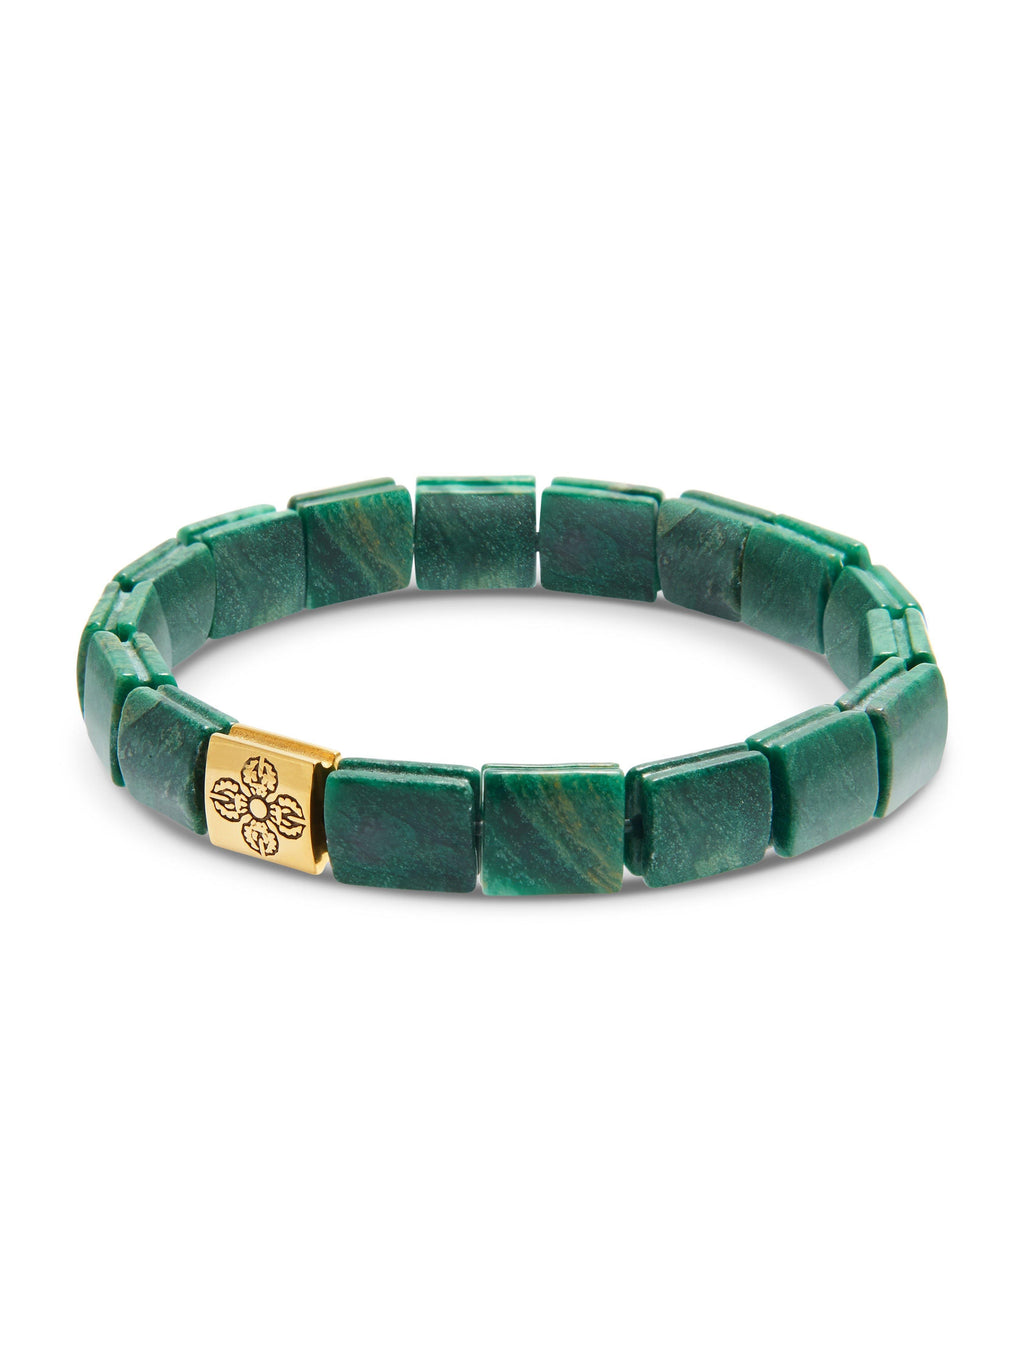 Men's Wristband with African Green Jade and Gold Dorje Flatbeads